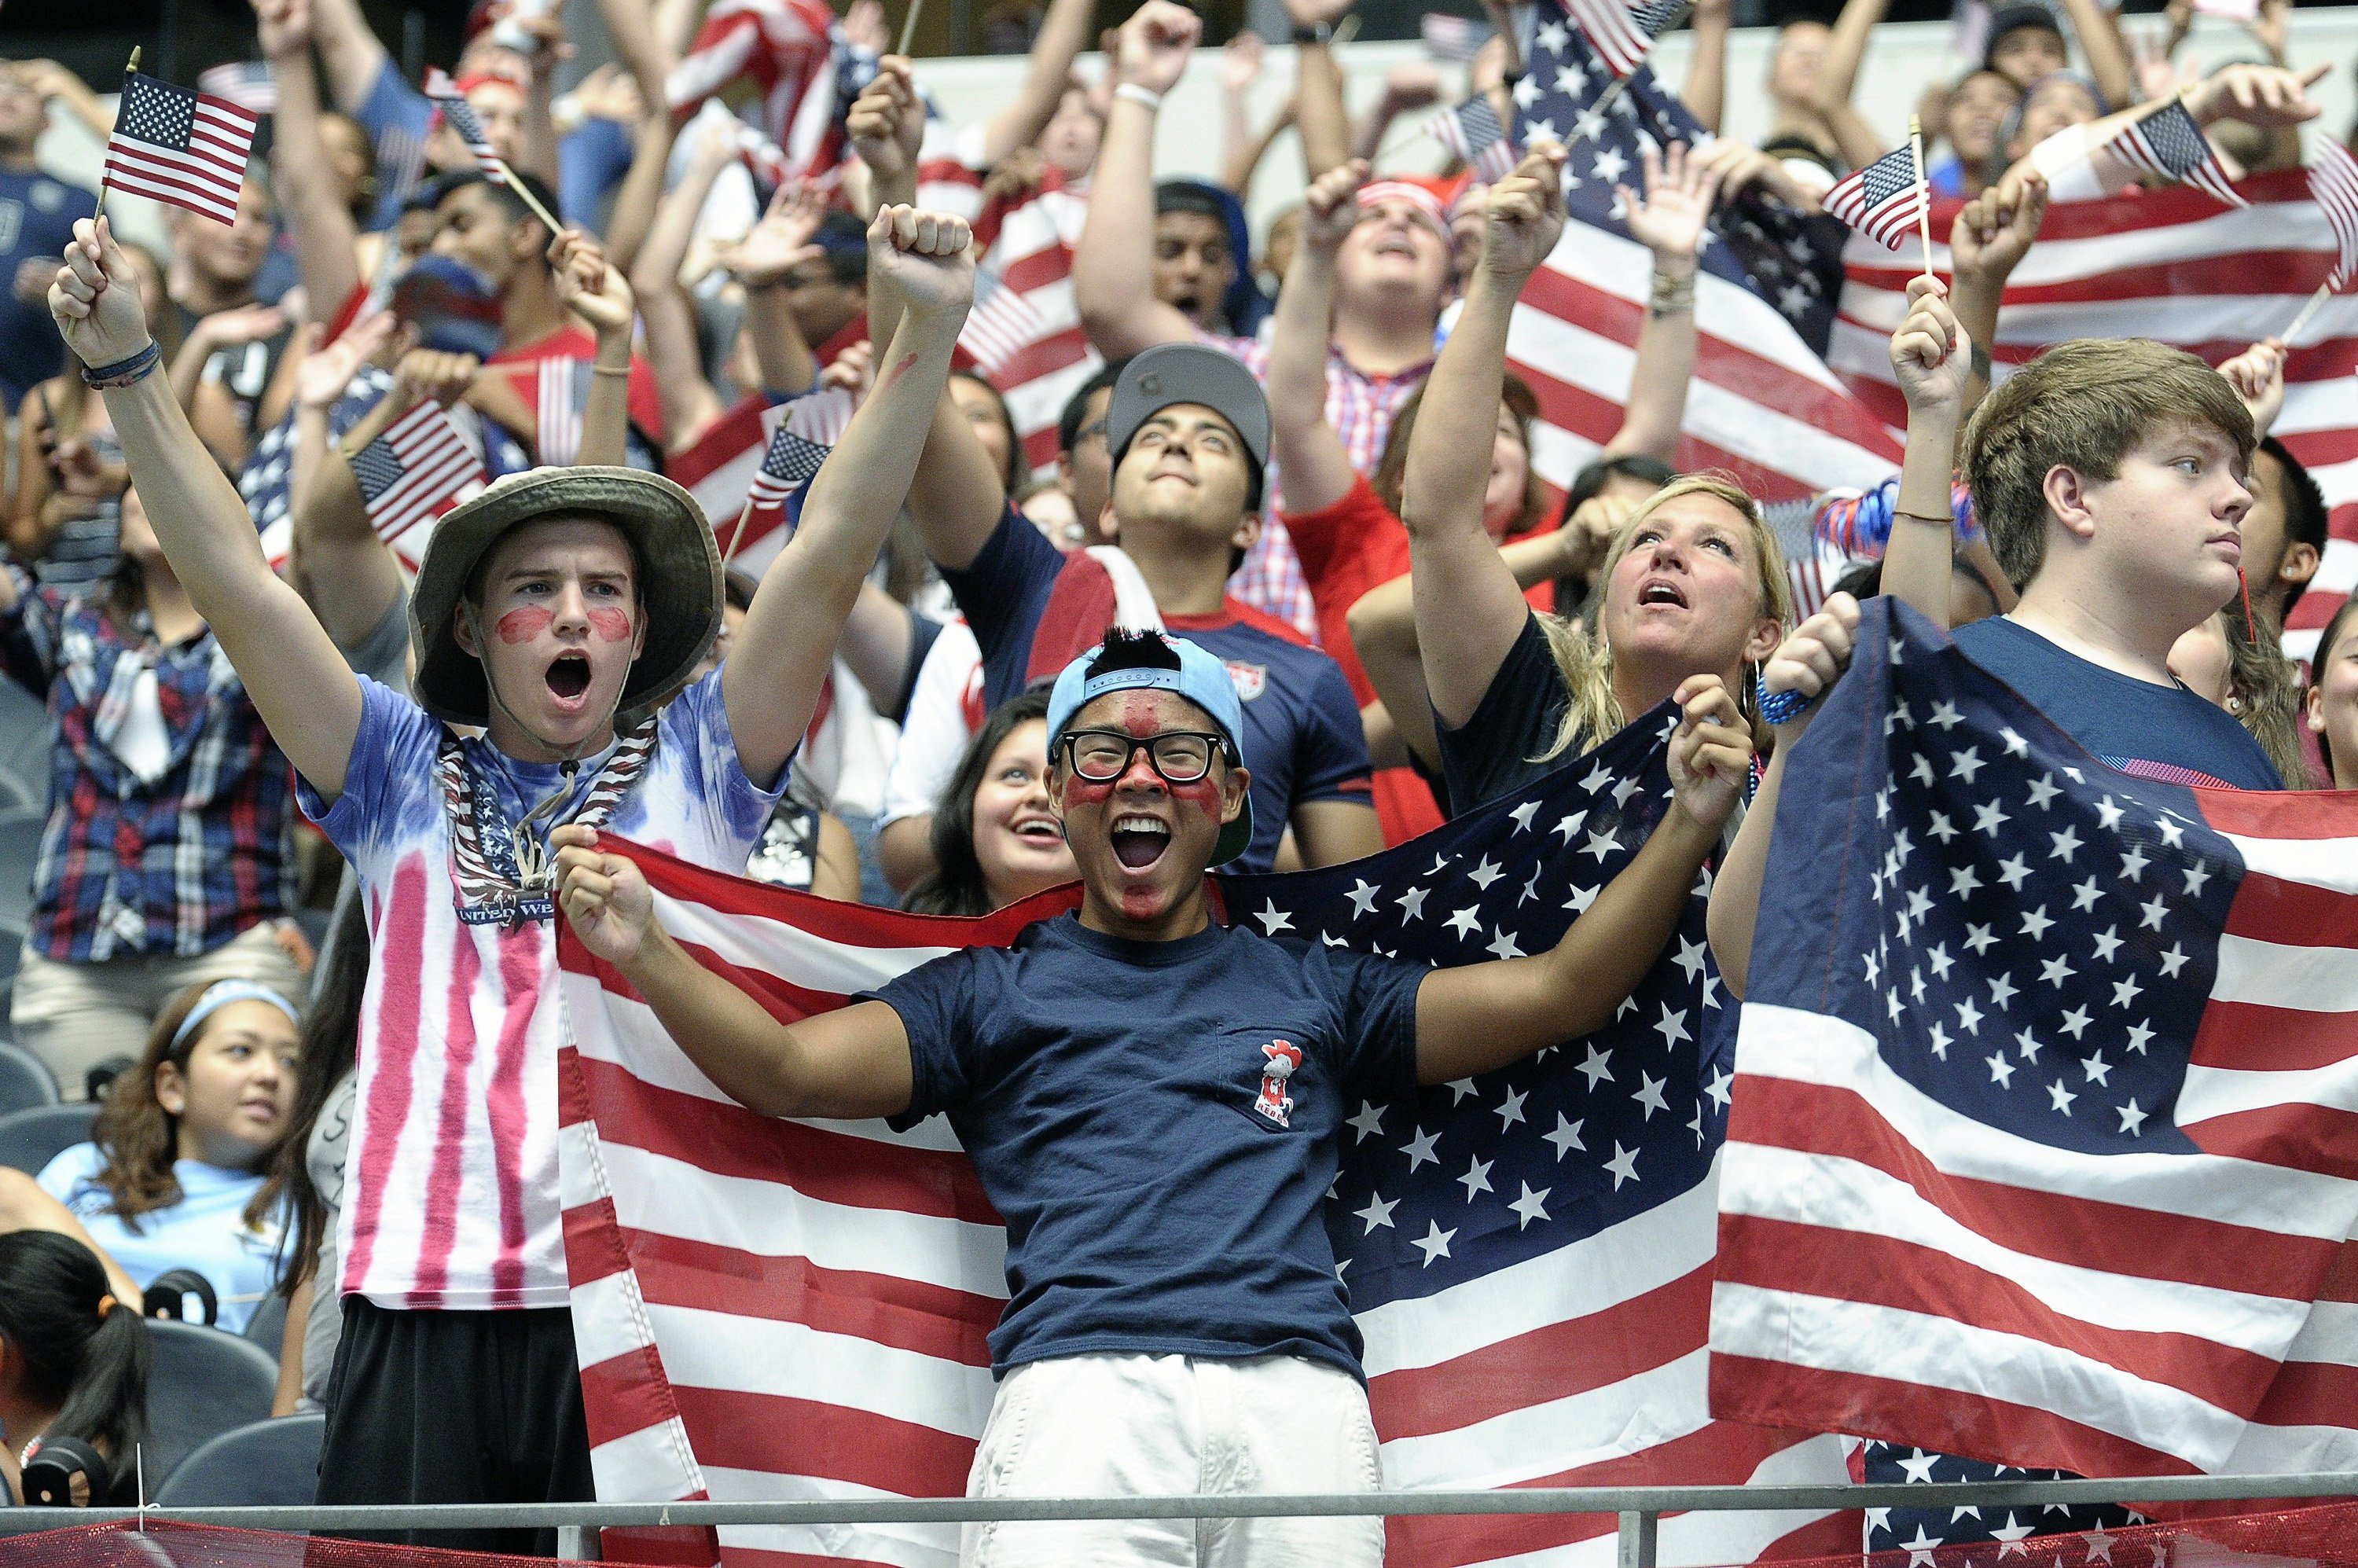 sports soccer cup american respect stadium nationalism cheer fans usa texas worth both momentum gaining despite exit opinion fort robert